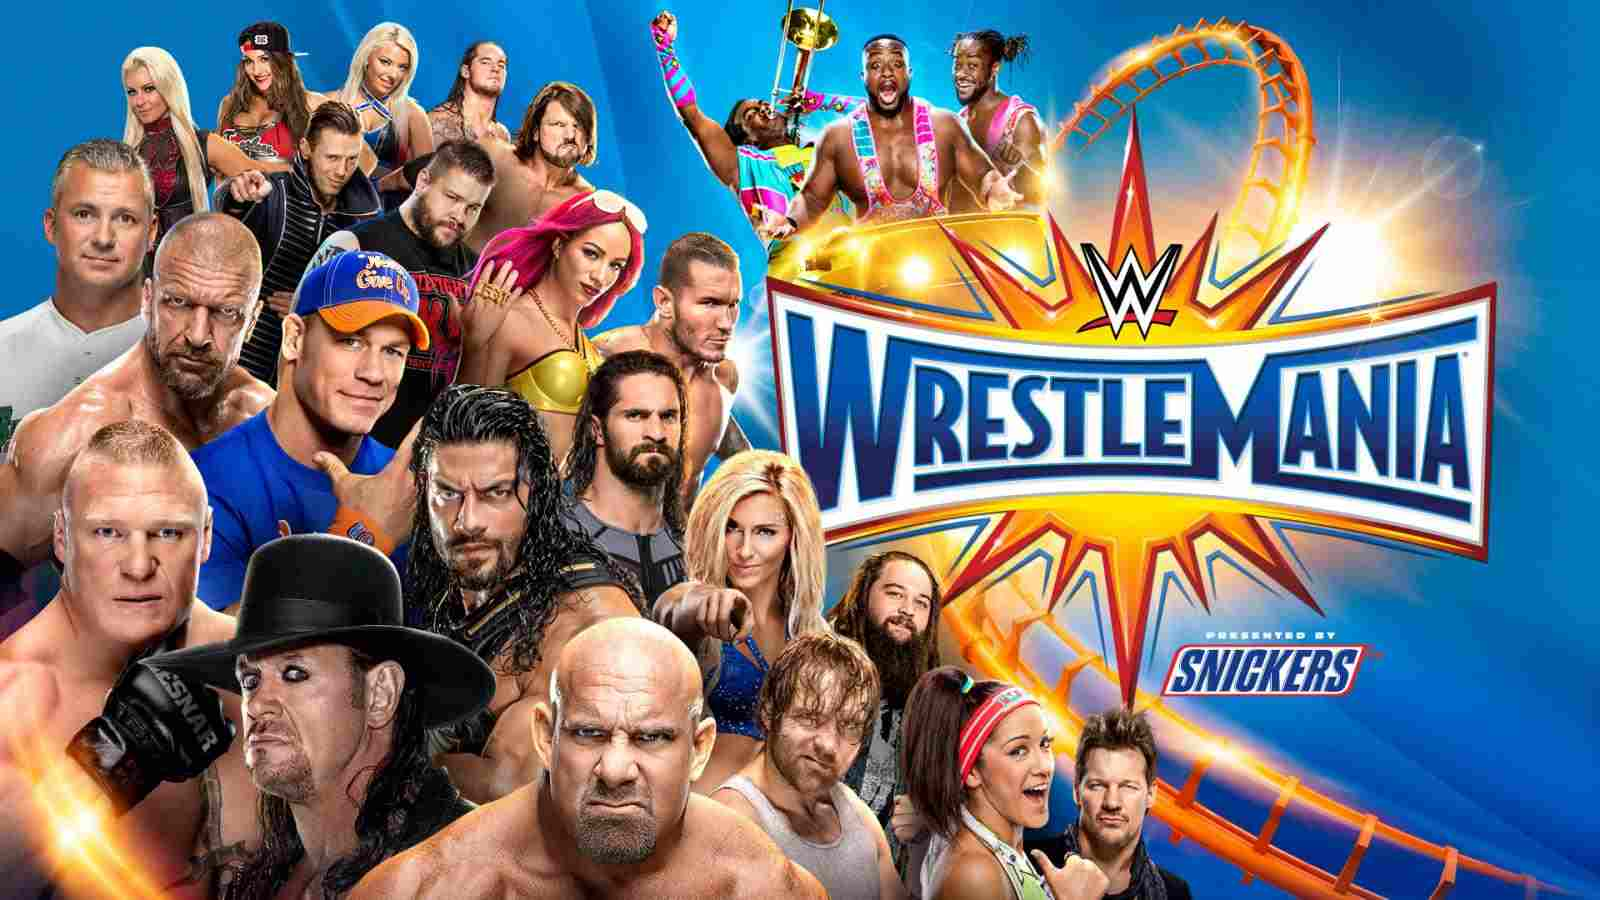 Stream WWE WrestleMania 33 Live